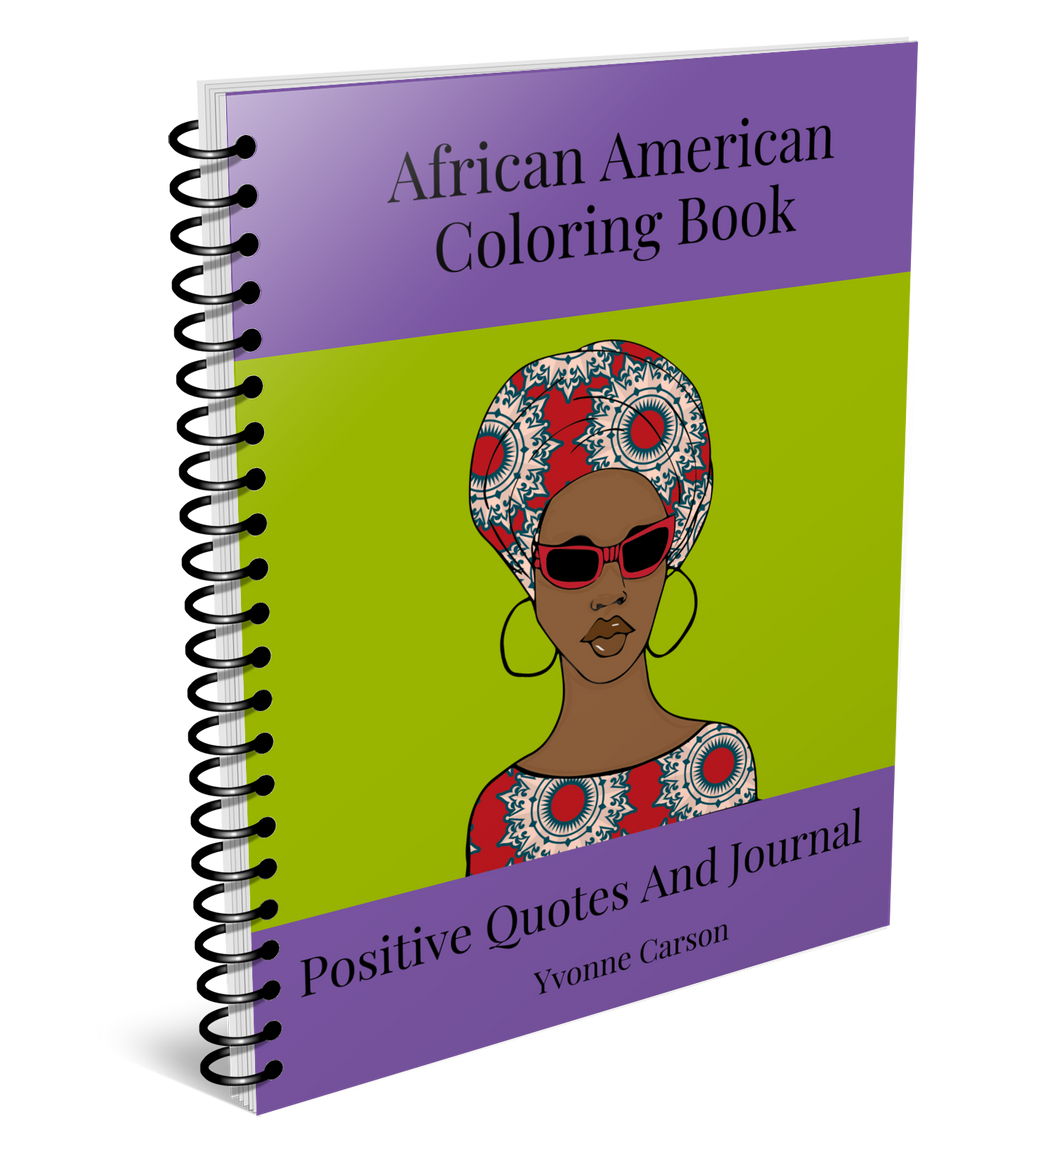 African American Coloring Book Positive Quotes And Journal*